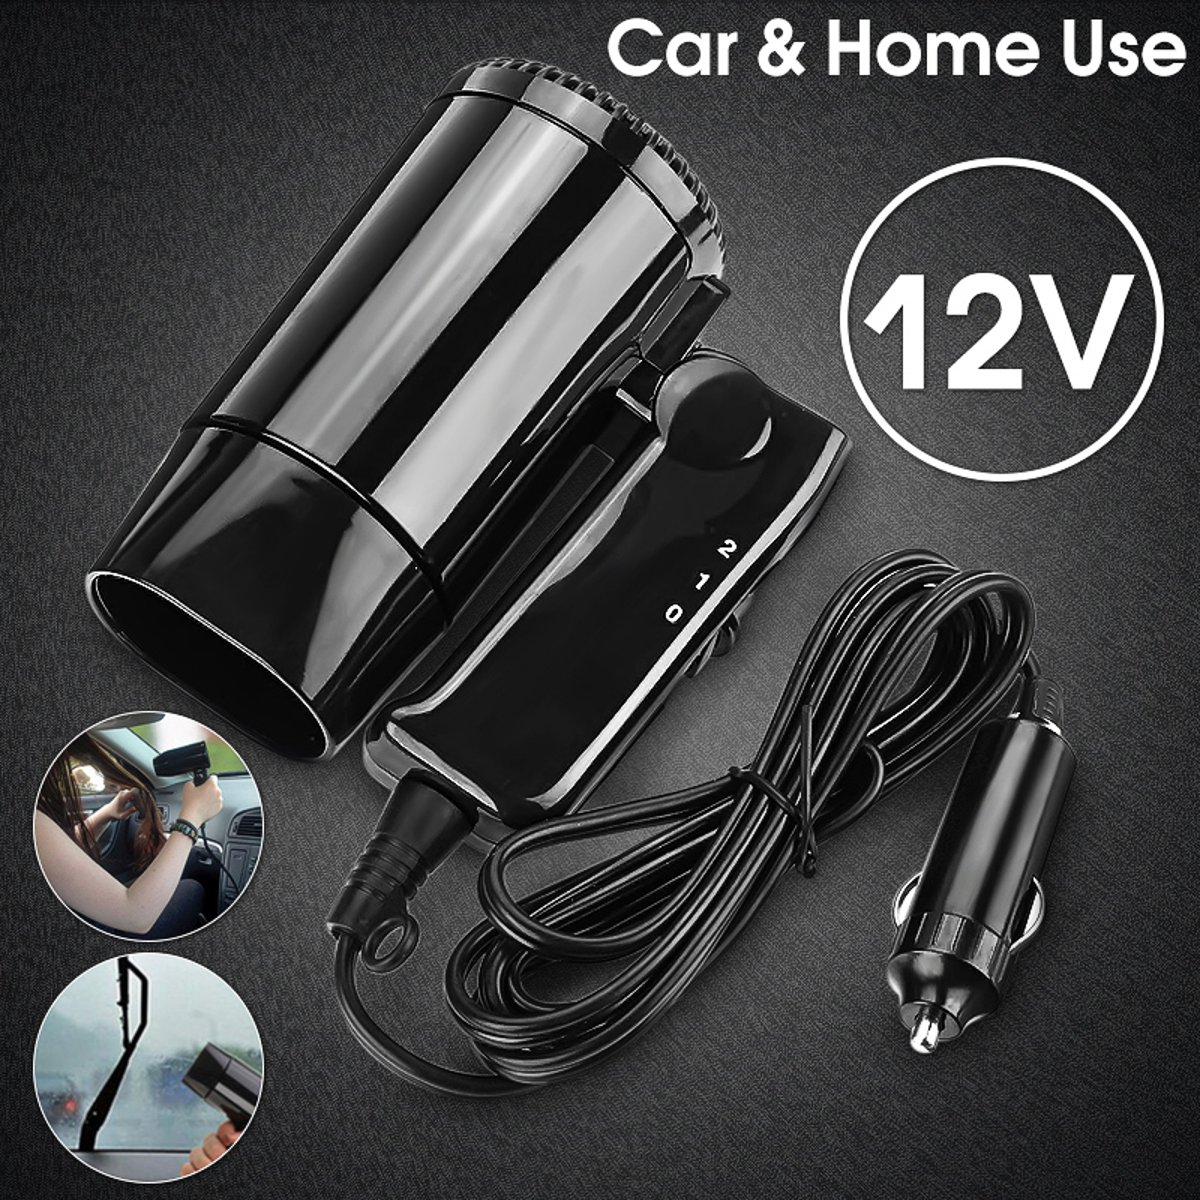 12V 12V Hot & Cold Travel Two Speed Nano Ceramic Car Portable Folding Camping Hair Dryer Window Defroster